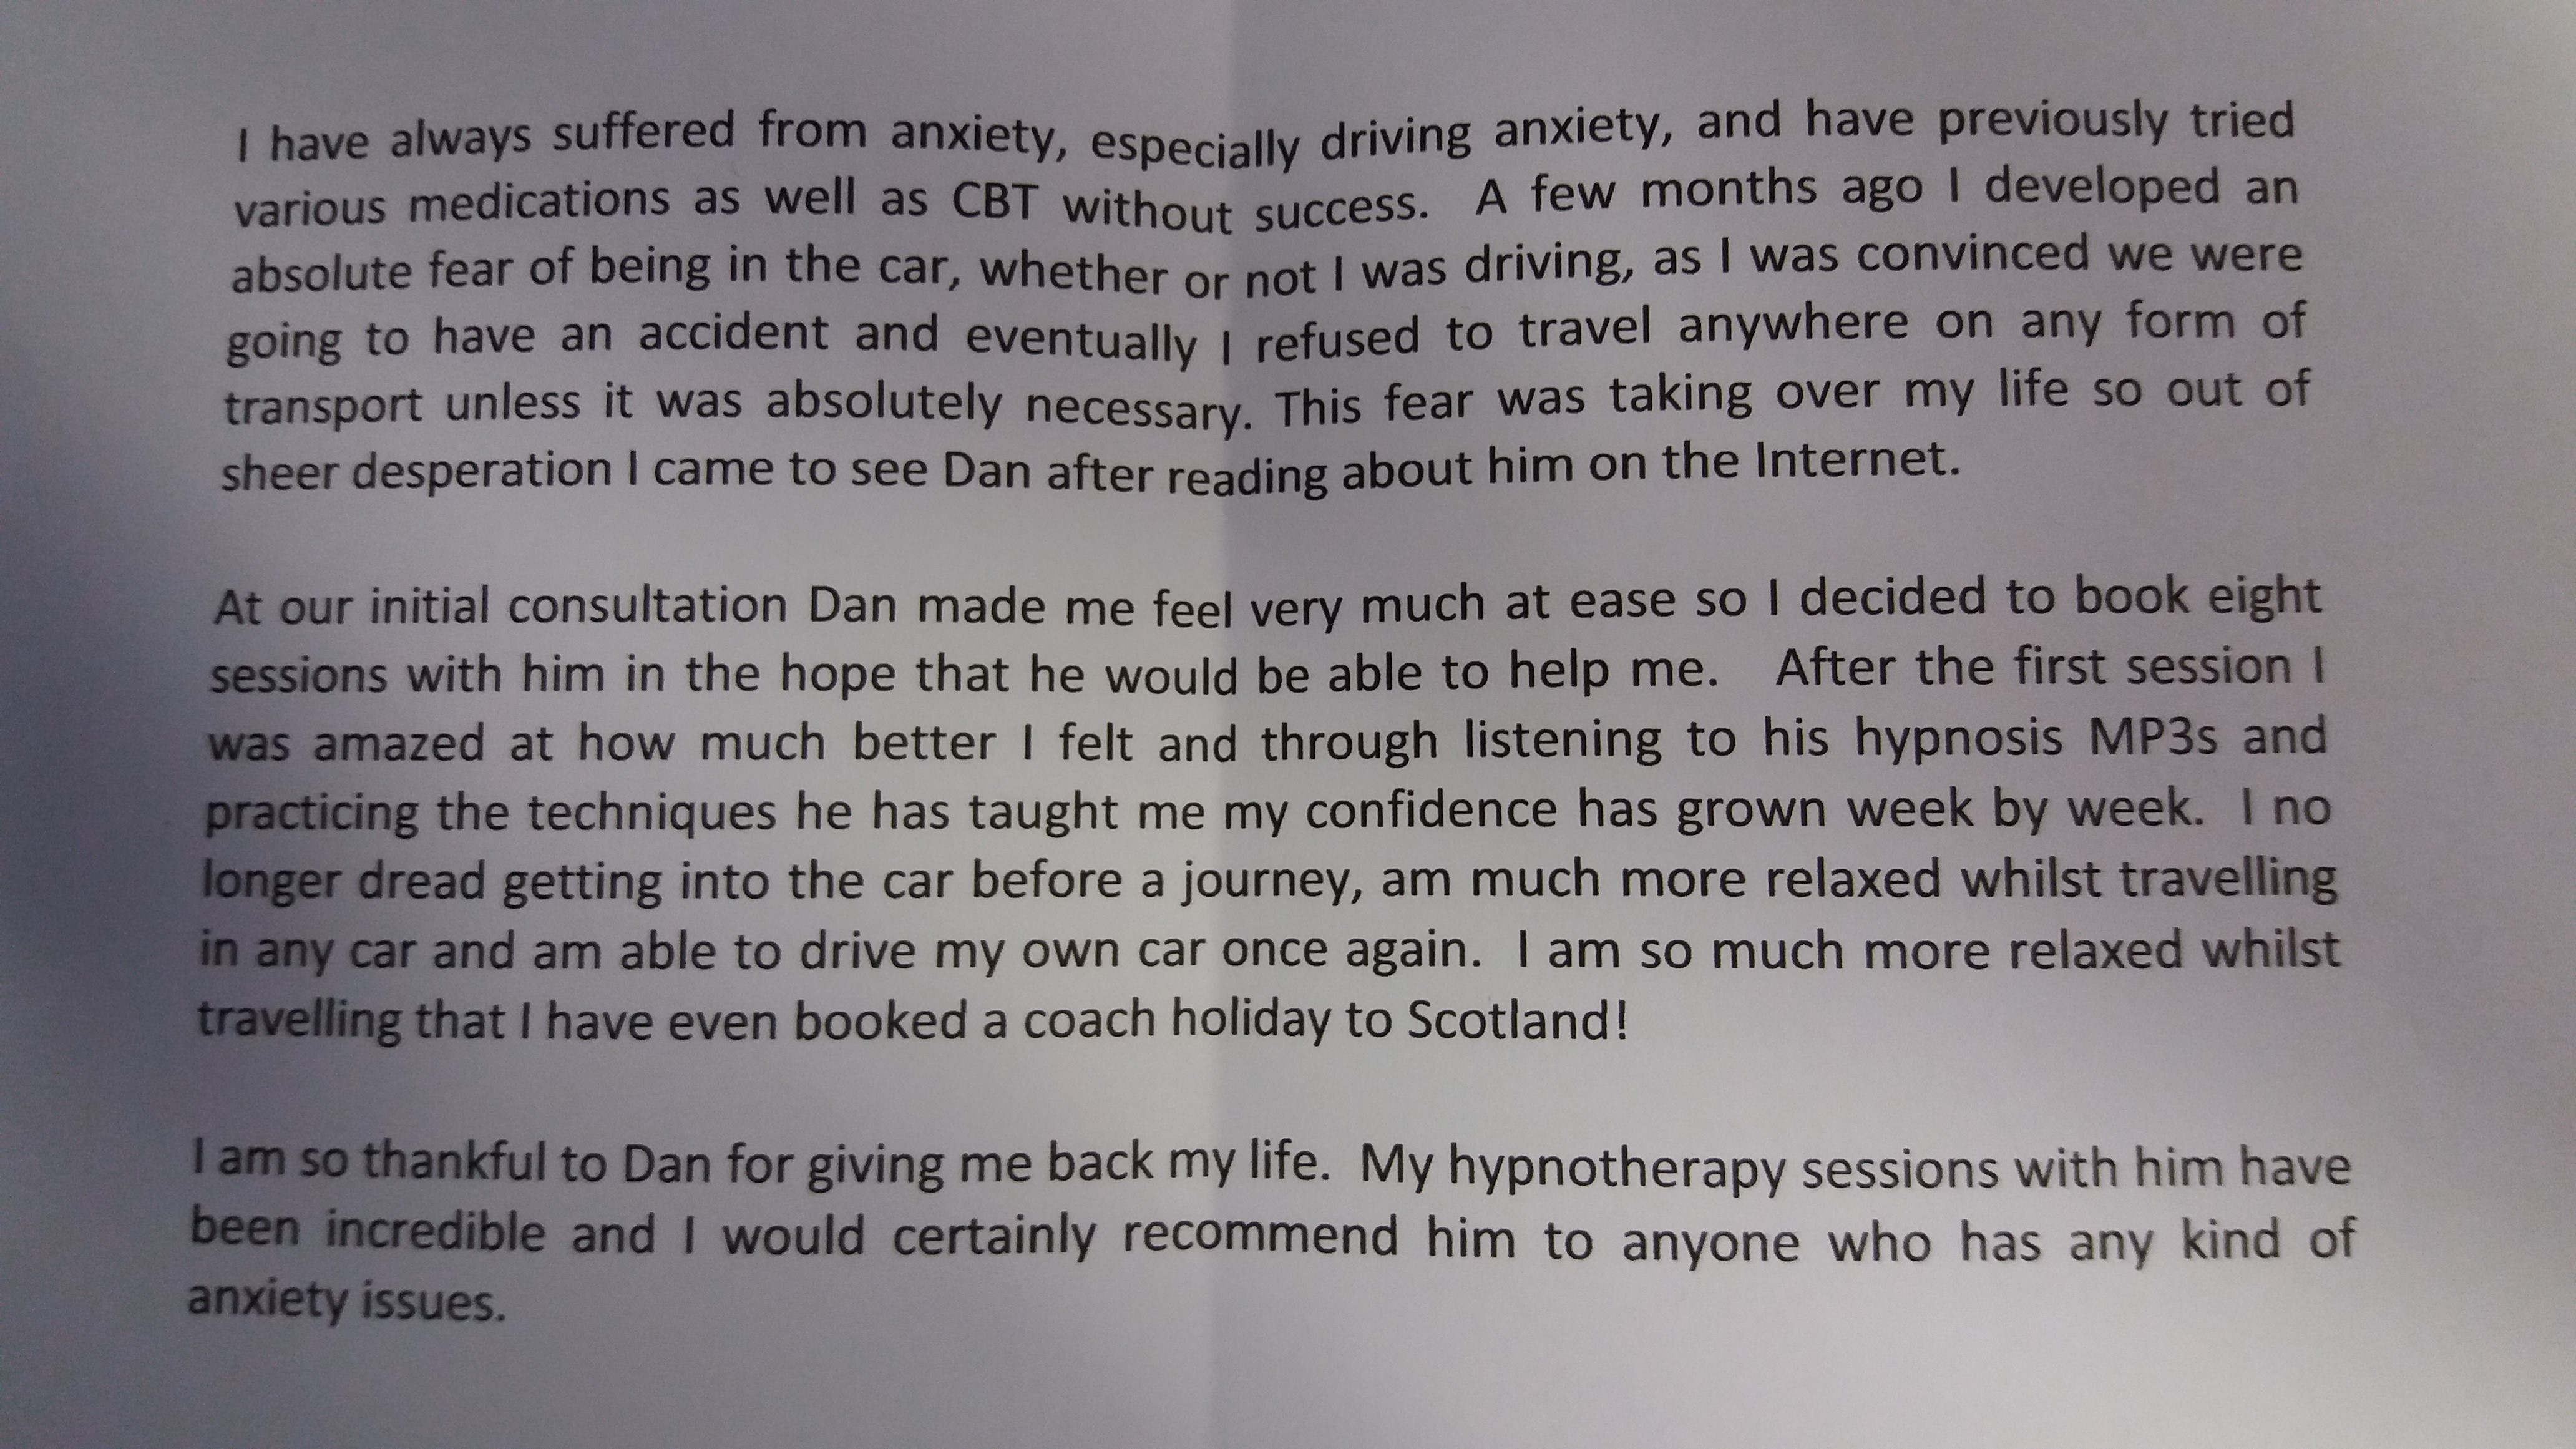 driving anxiety help ely hypnotherapy dan regan